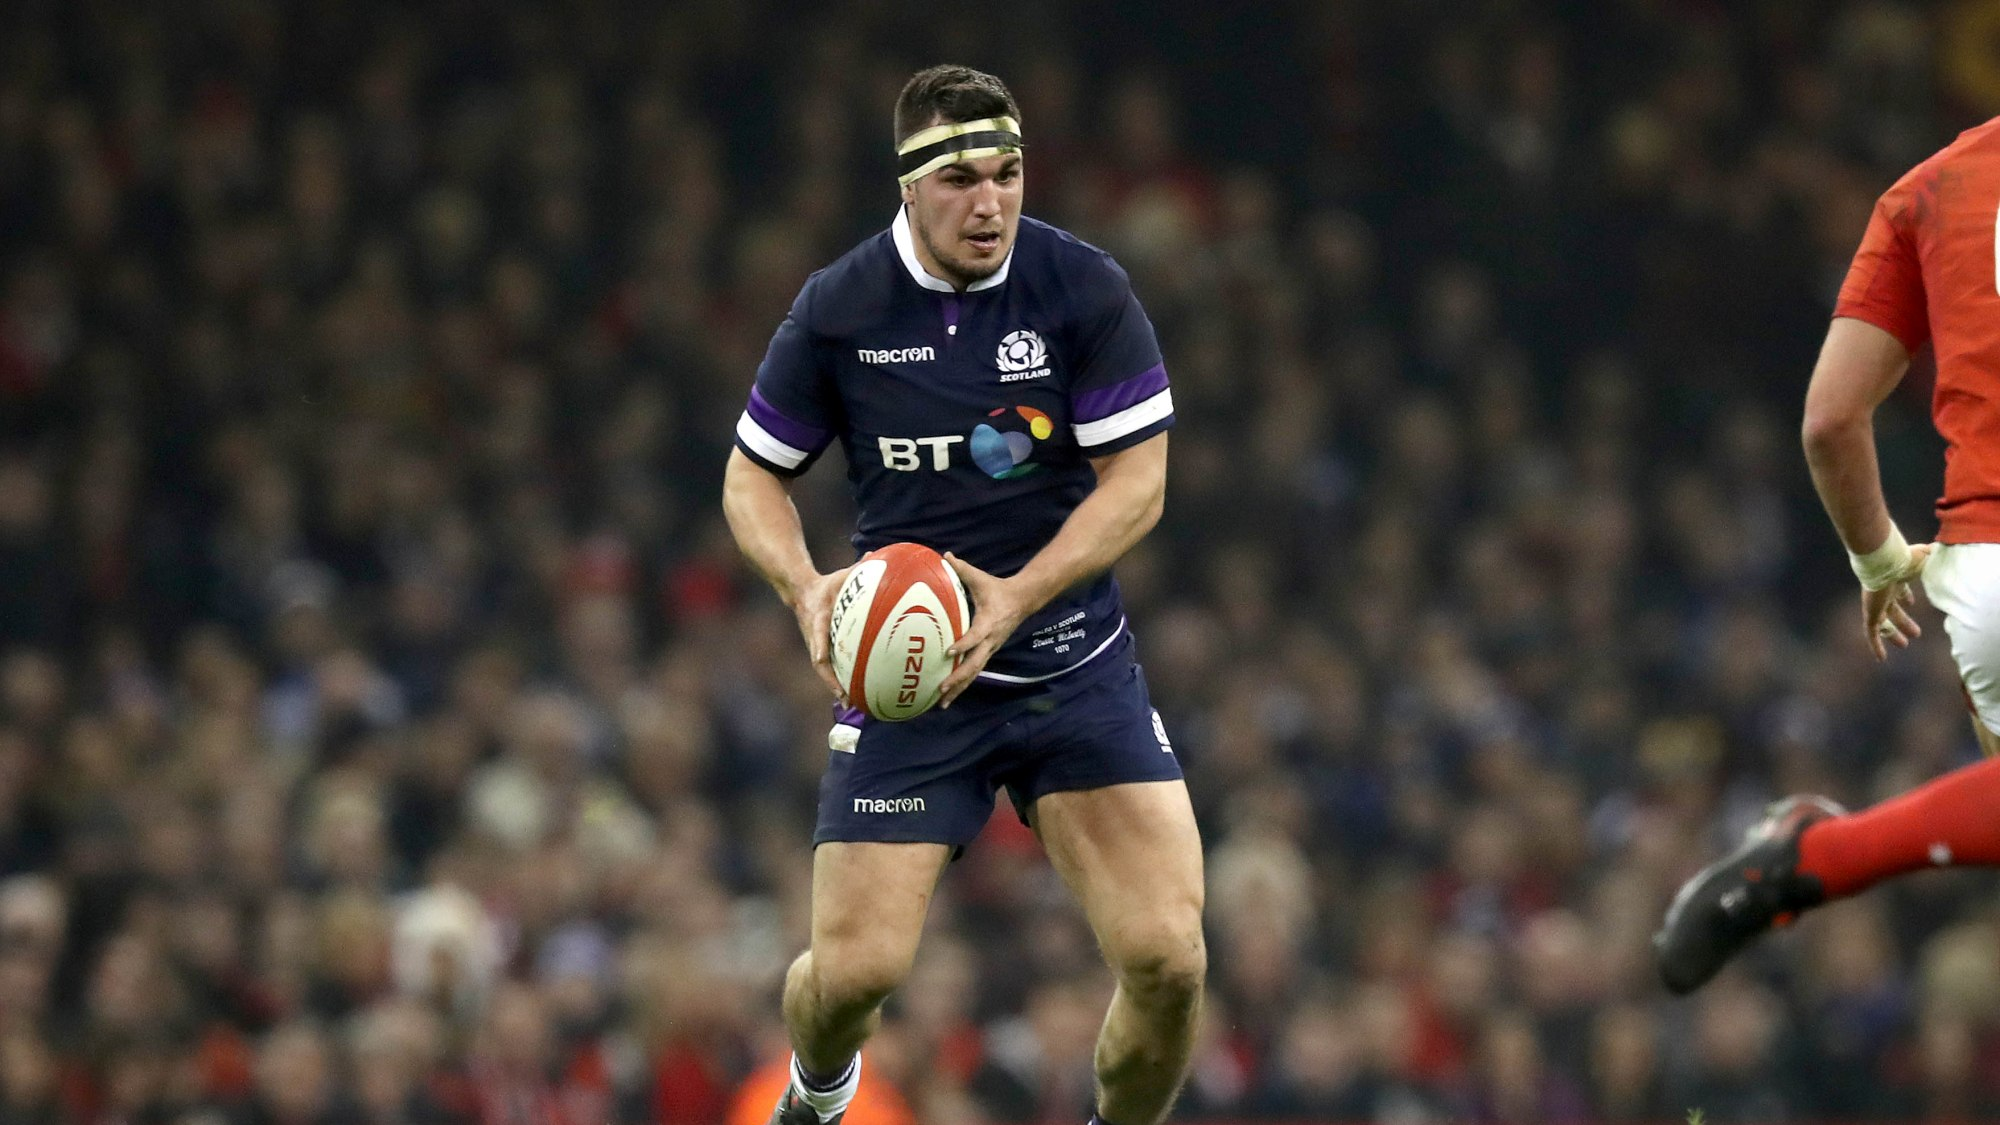 Analysis: Scotland reliant on new blood up front